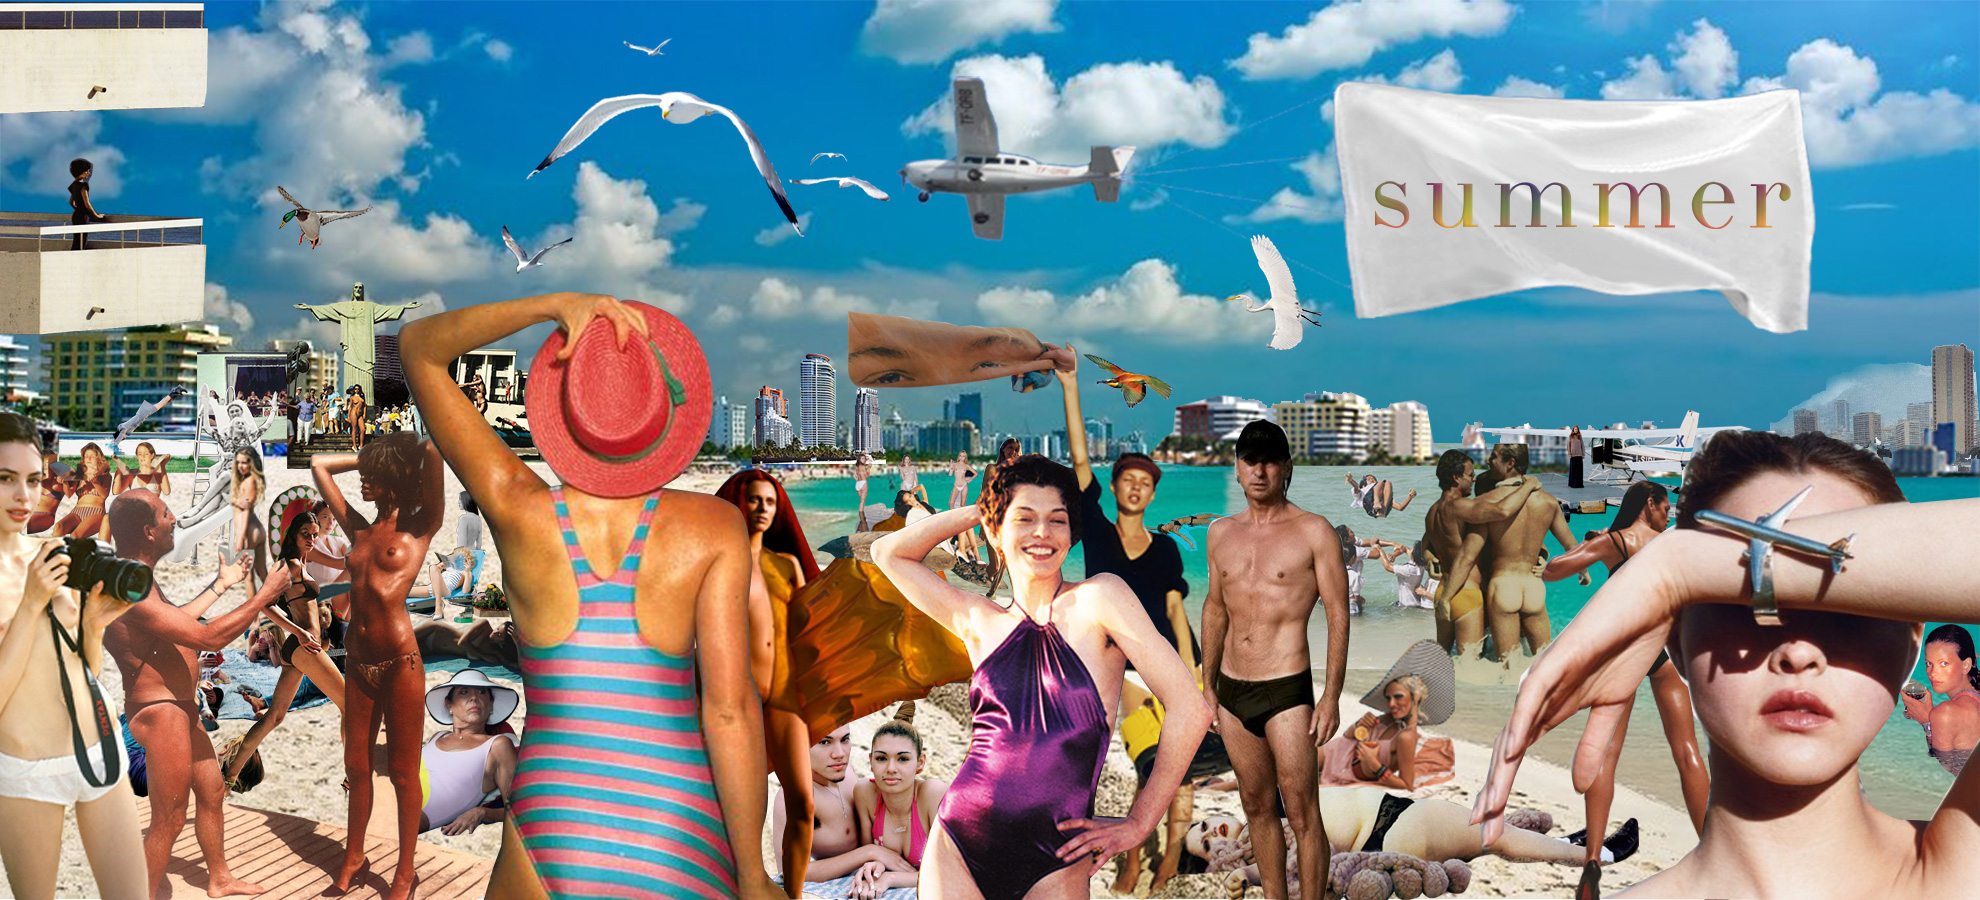 Summer Artwork for Strip Home Page 2015